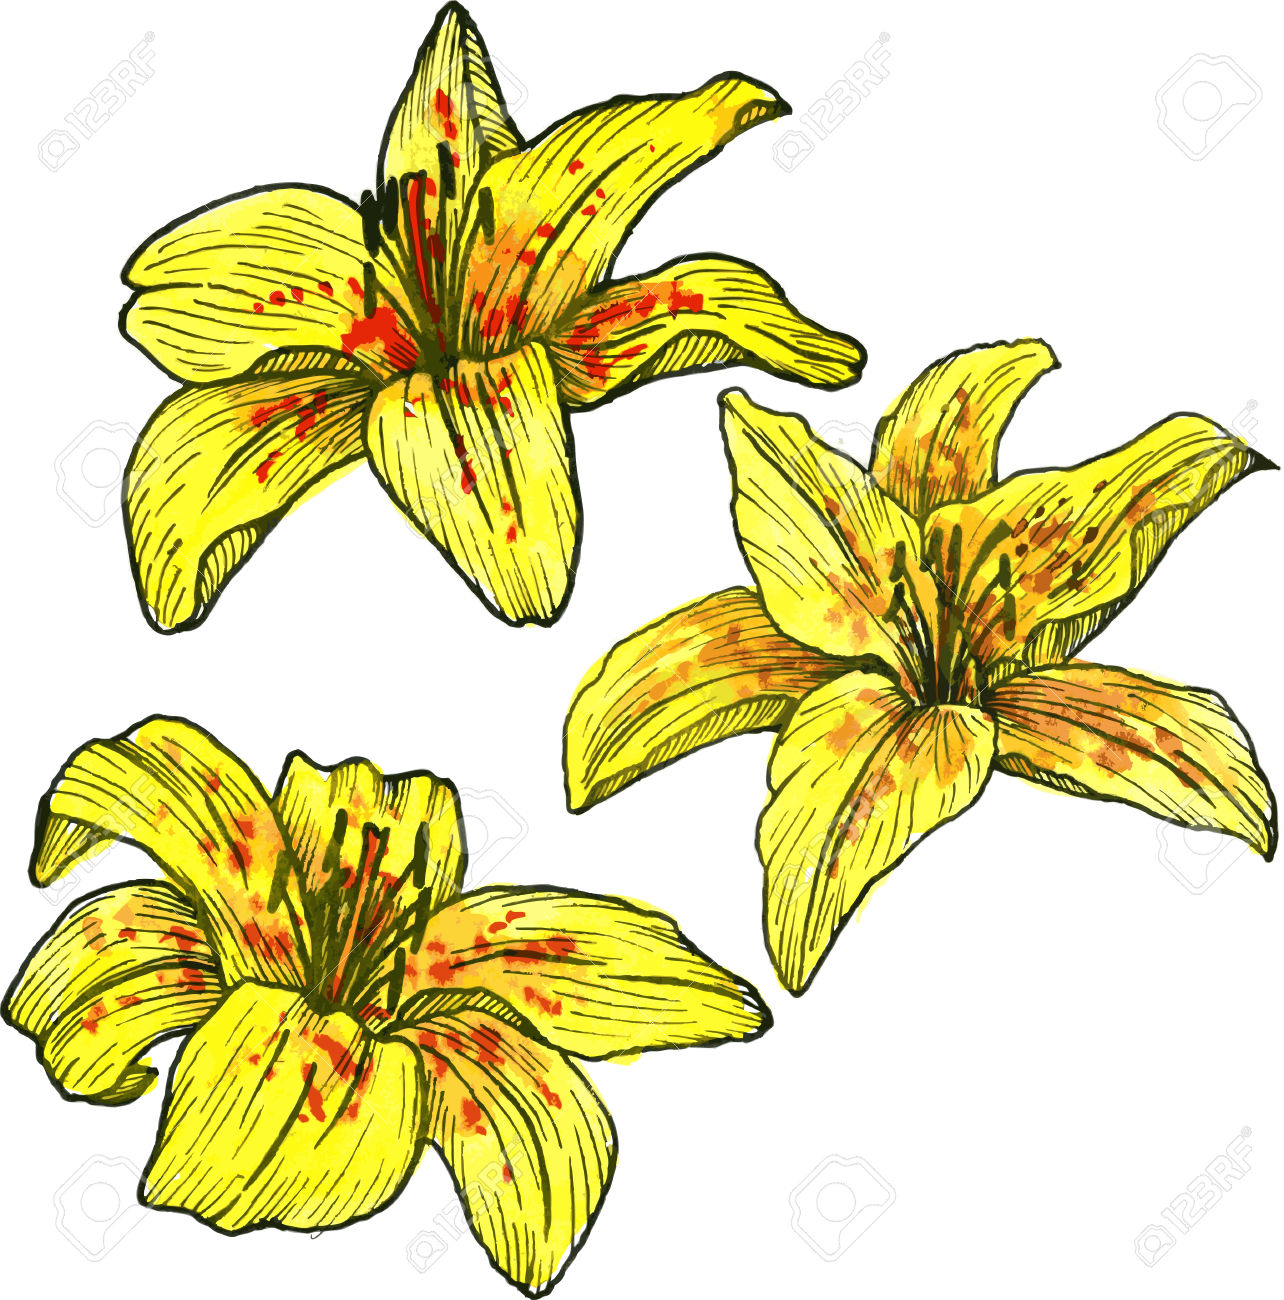 2,576 Yellow Lilies Stock Vector Illustration And Royalty Free.